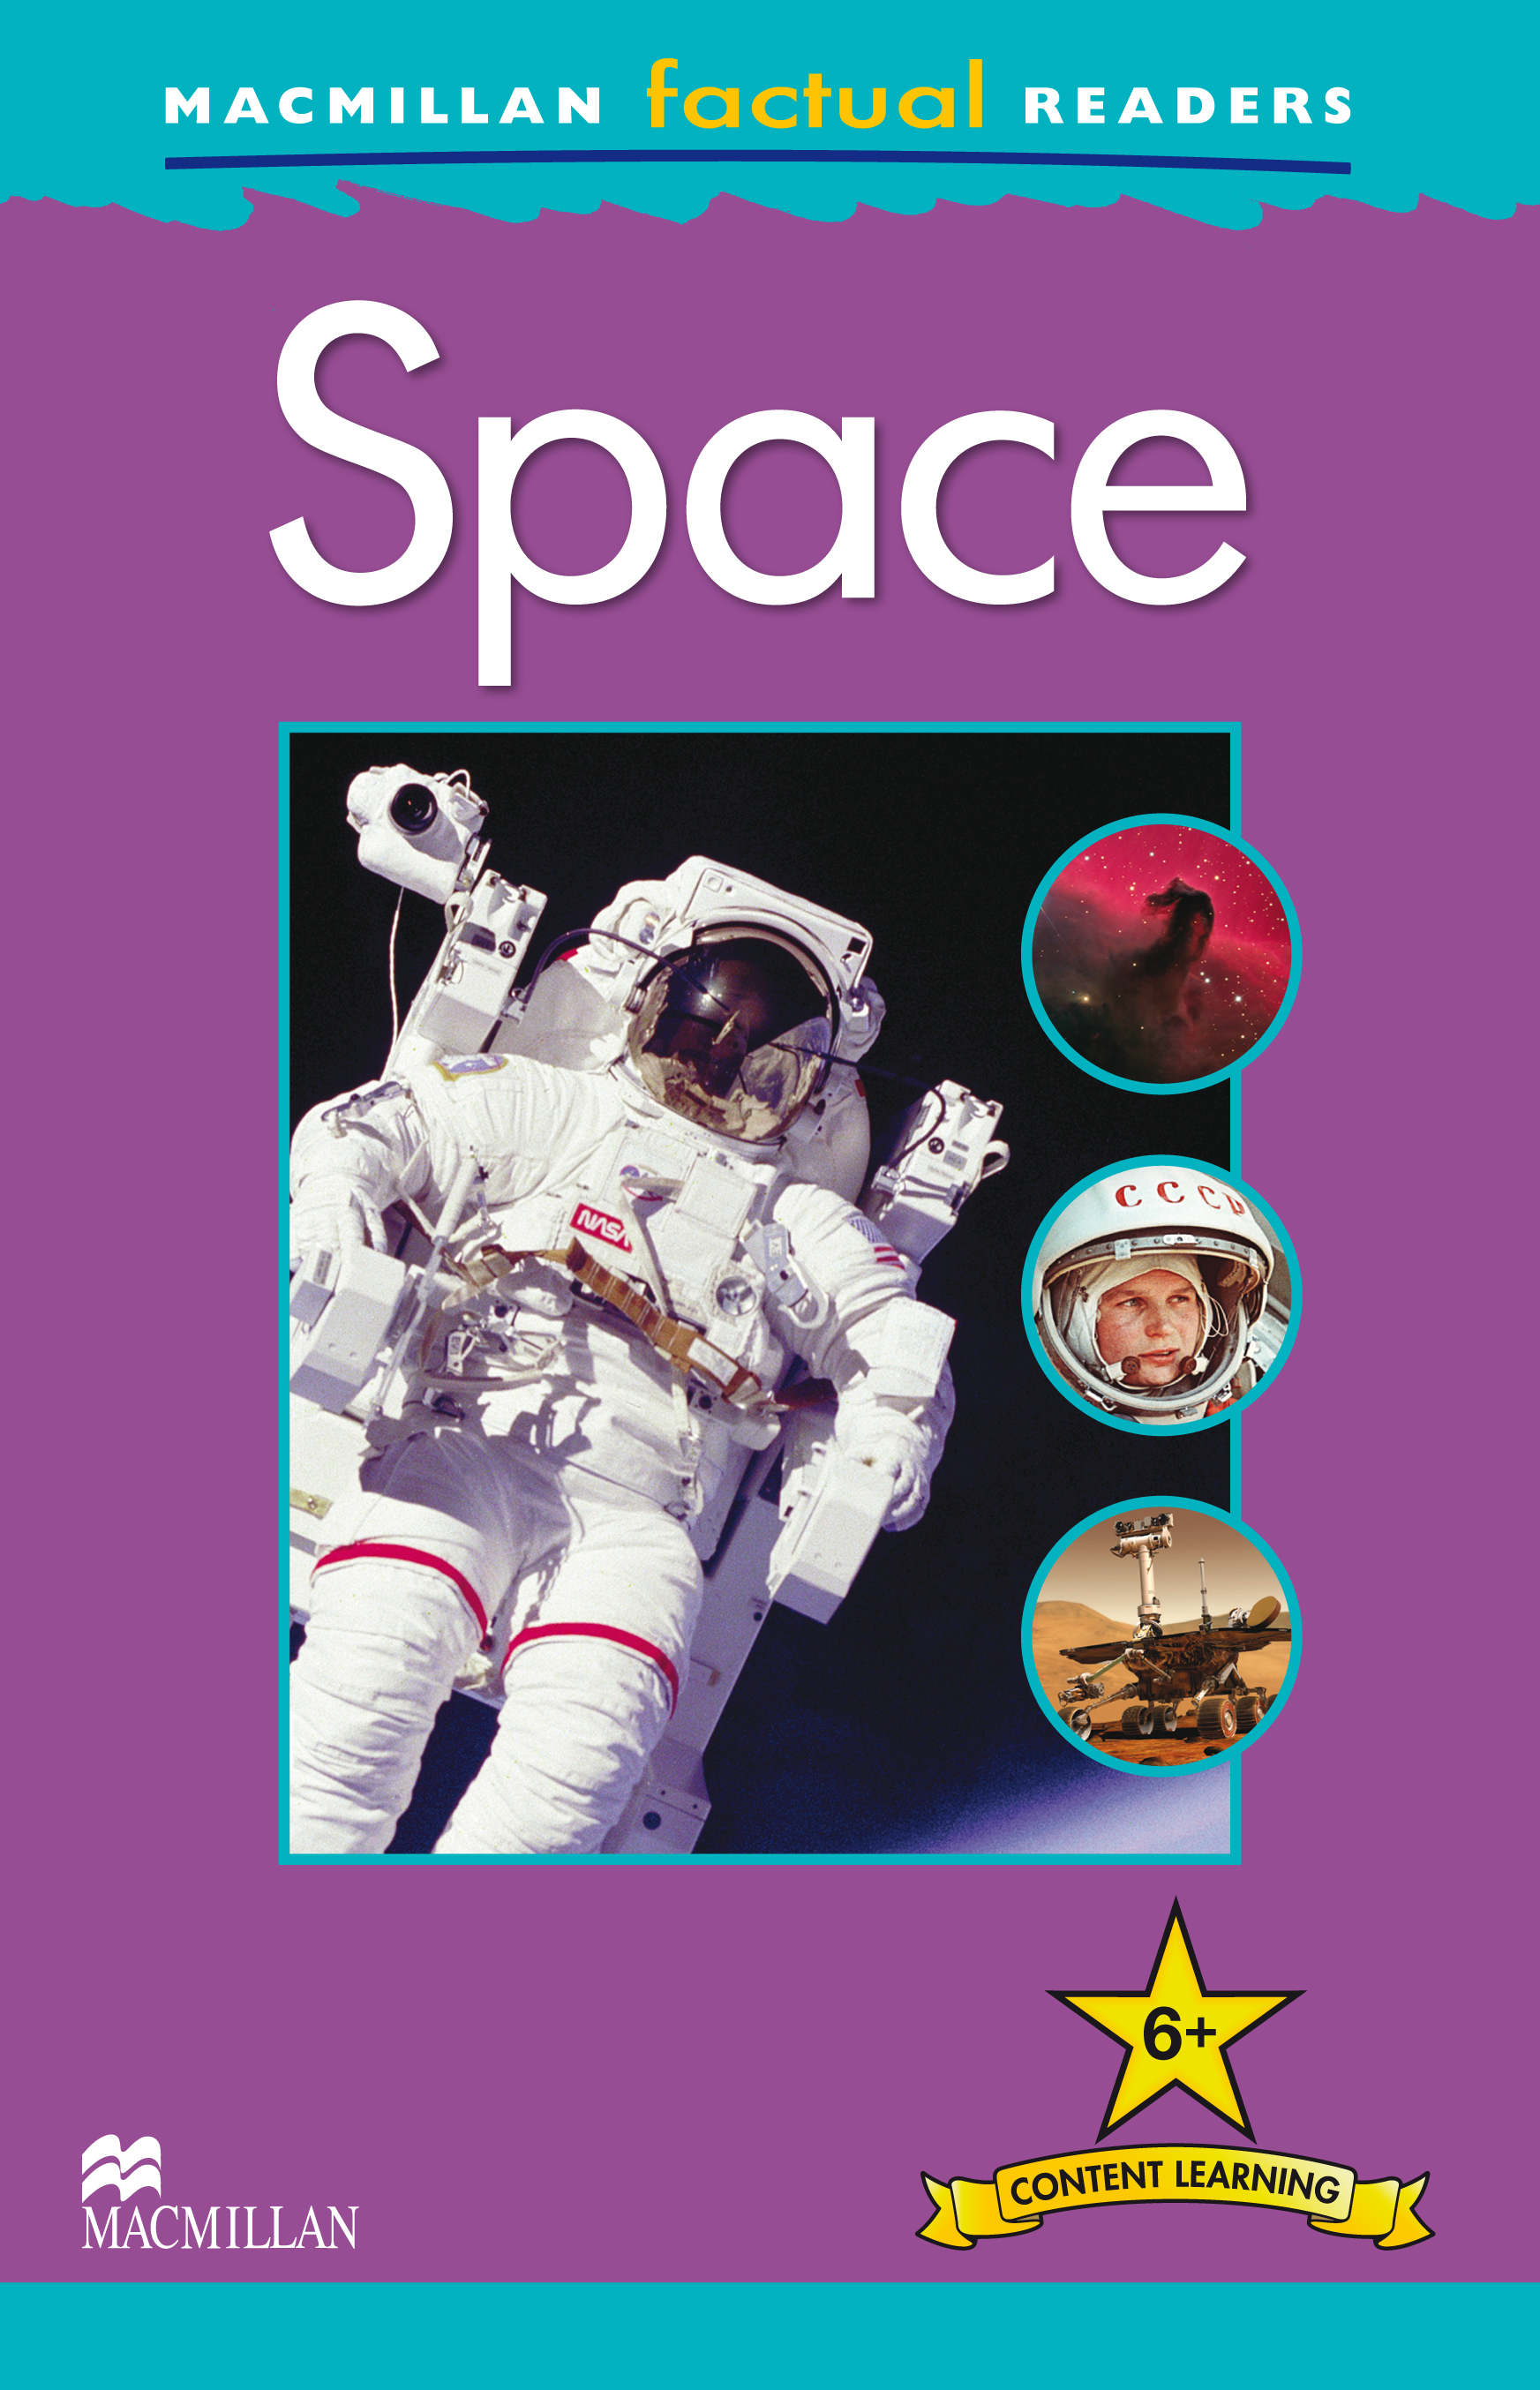 Macmillan Factual Readers: Space